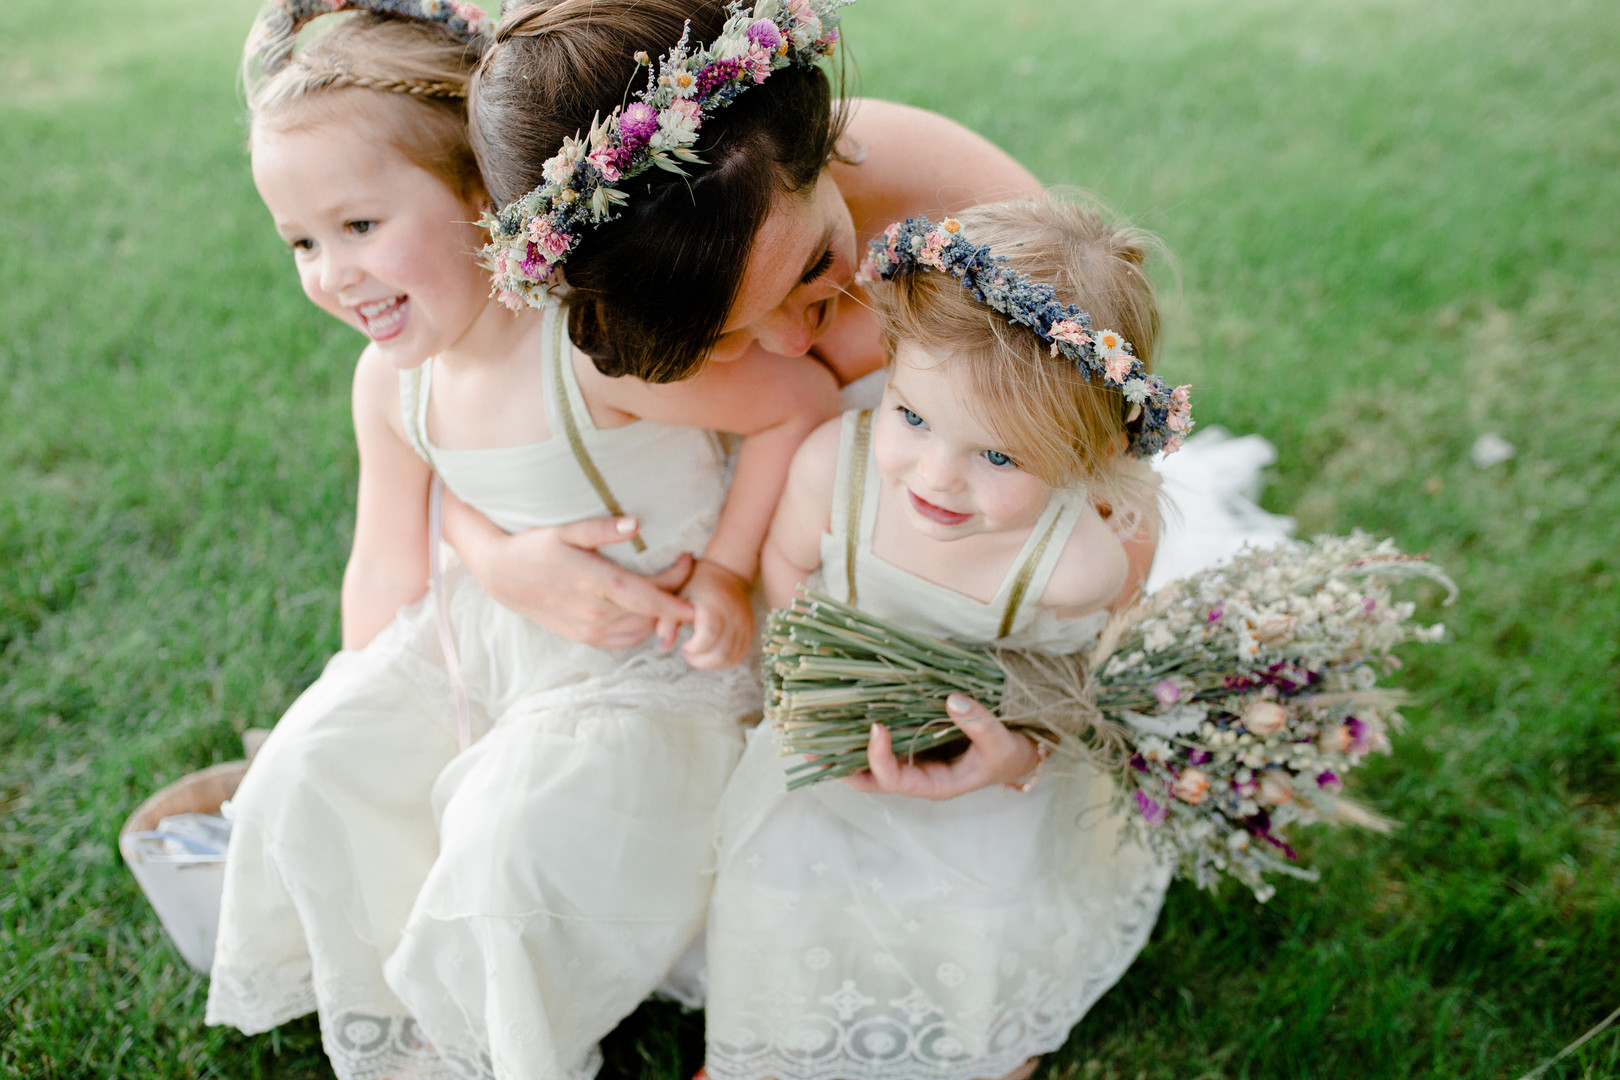 Bride with flower girls: Rustic country wedding in Minooka, IL captured by Katie Brsan Photography. Visit CHItheeWED.com for more wedding inspiration!